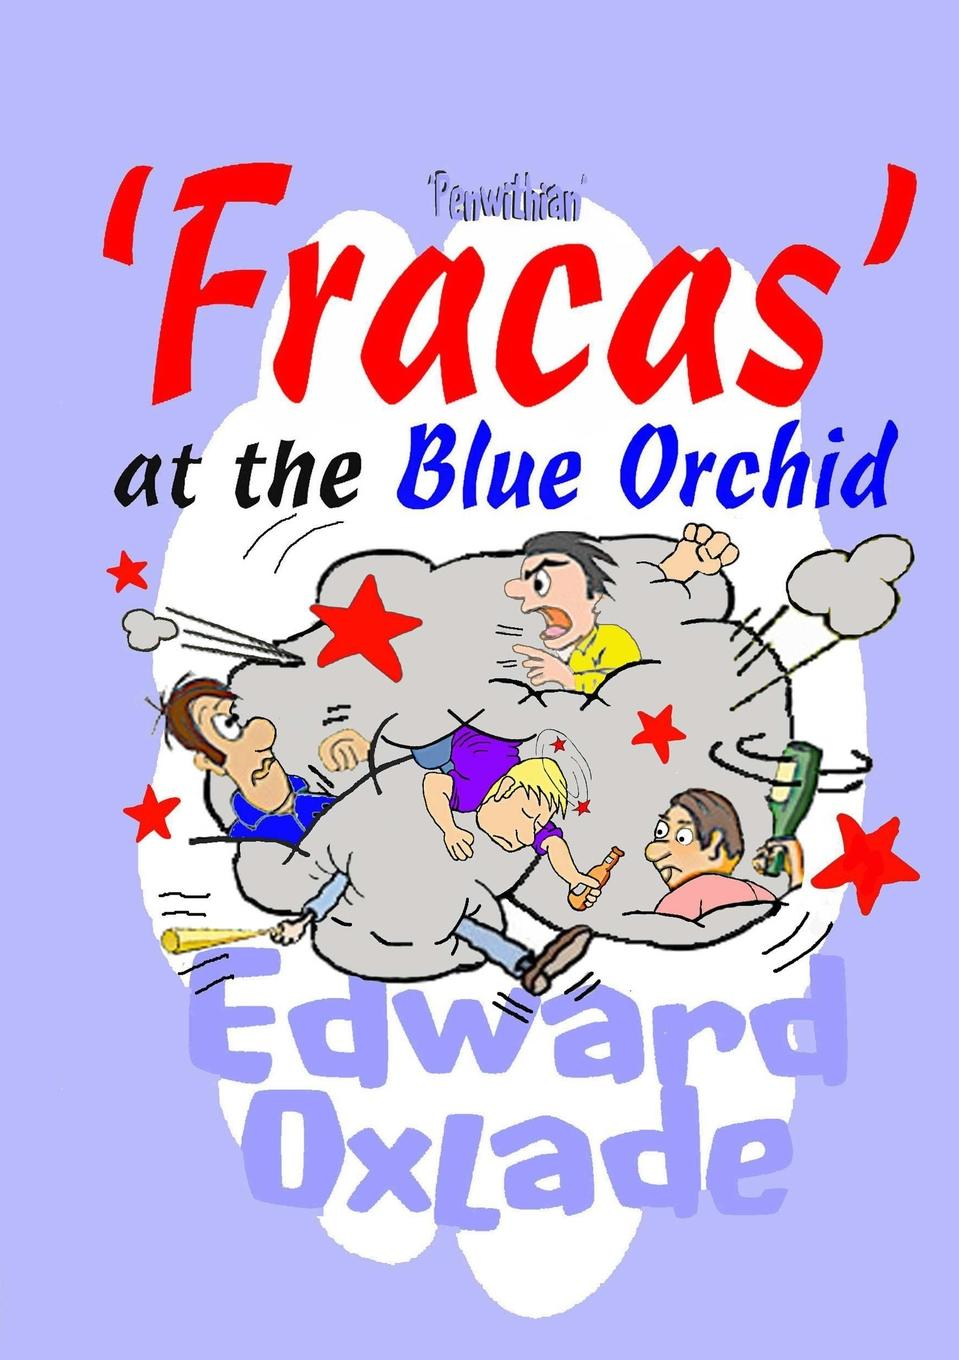 Edward Oxlade Fracas at the Blue Orchid merle a reinikka a history of the orchid